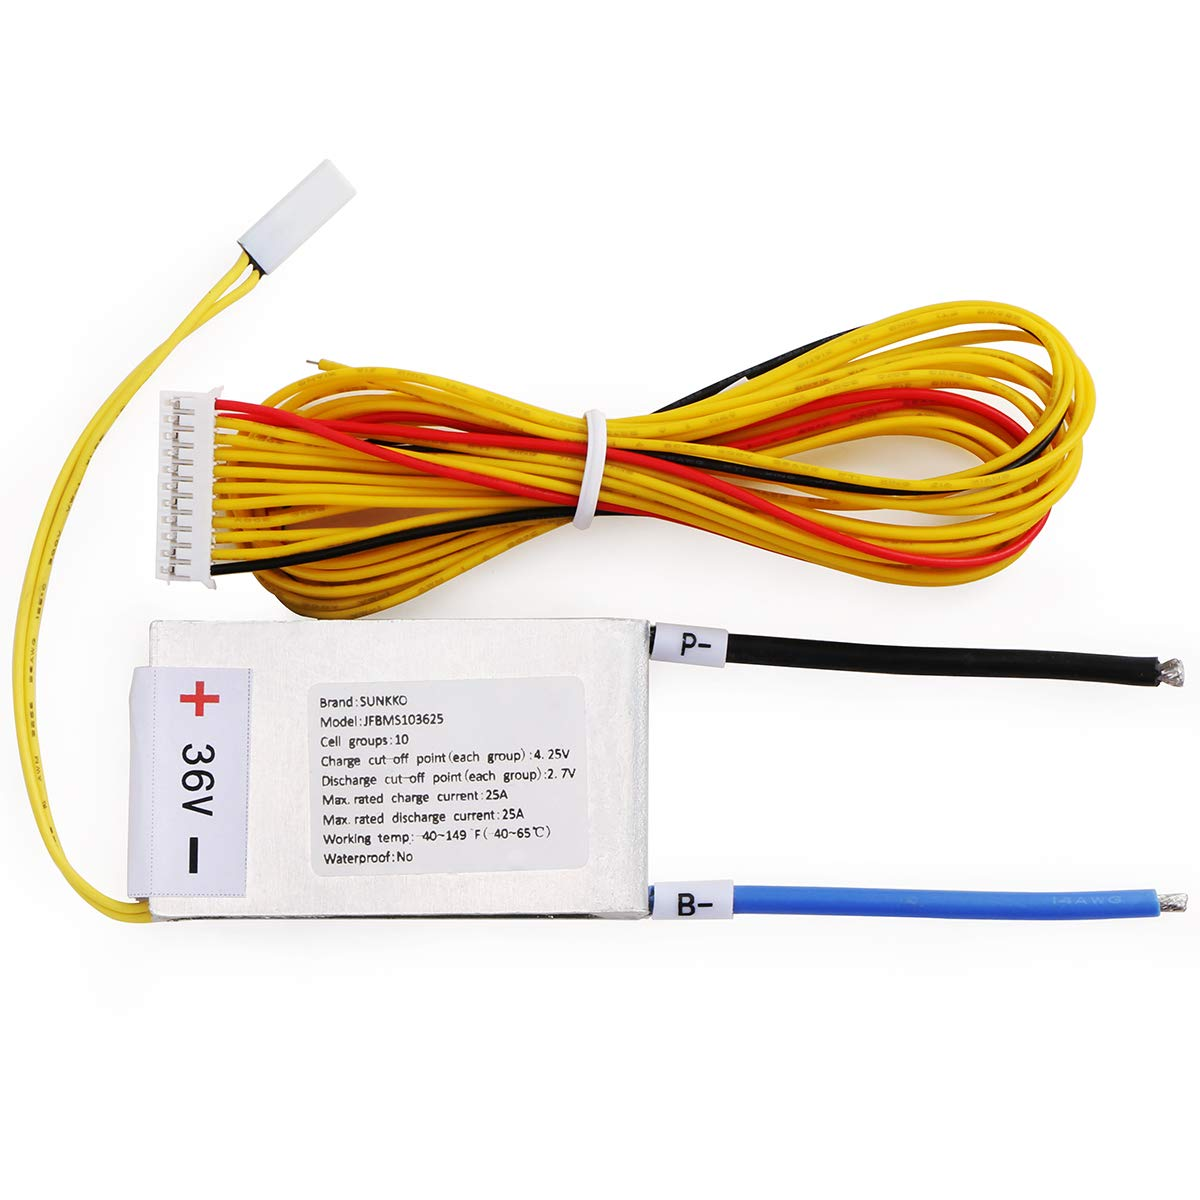 36V 10s Battery Management System(BMS) with 25A Change/Discharge Current, DIY Lithium Battery Pack